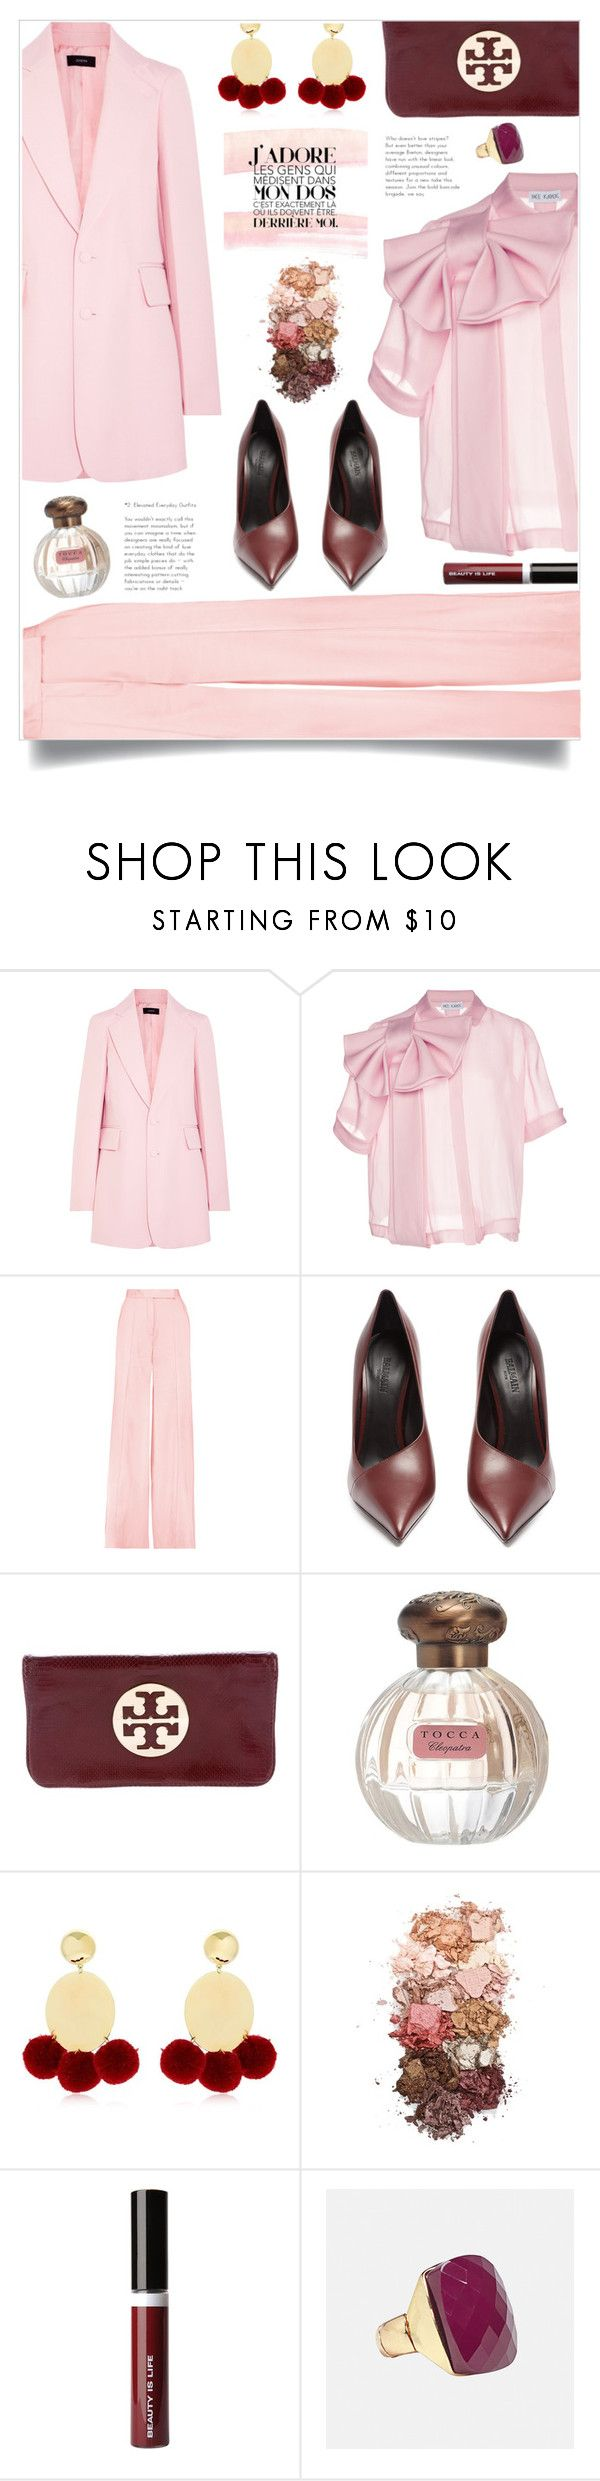 """Oversized Blazers"" by mariamouzaki ❤ liked on Polyvore featuring Joseph, Dice Kayek, Amanda Wakeley, Balmain, Tory Burch, Tocca, Elizabeth and James, Sigma, Beauty Is Life and Avenue"